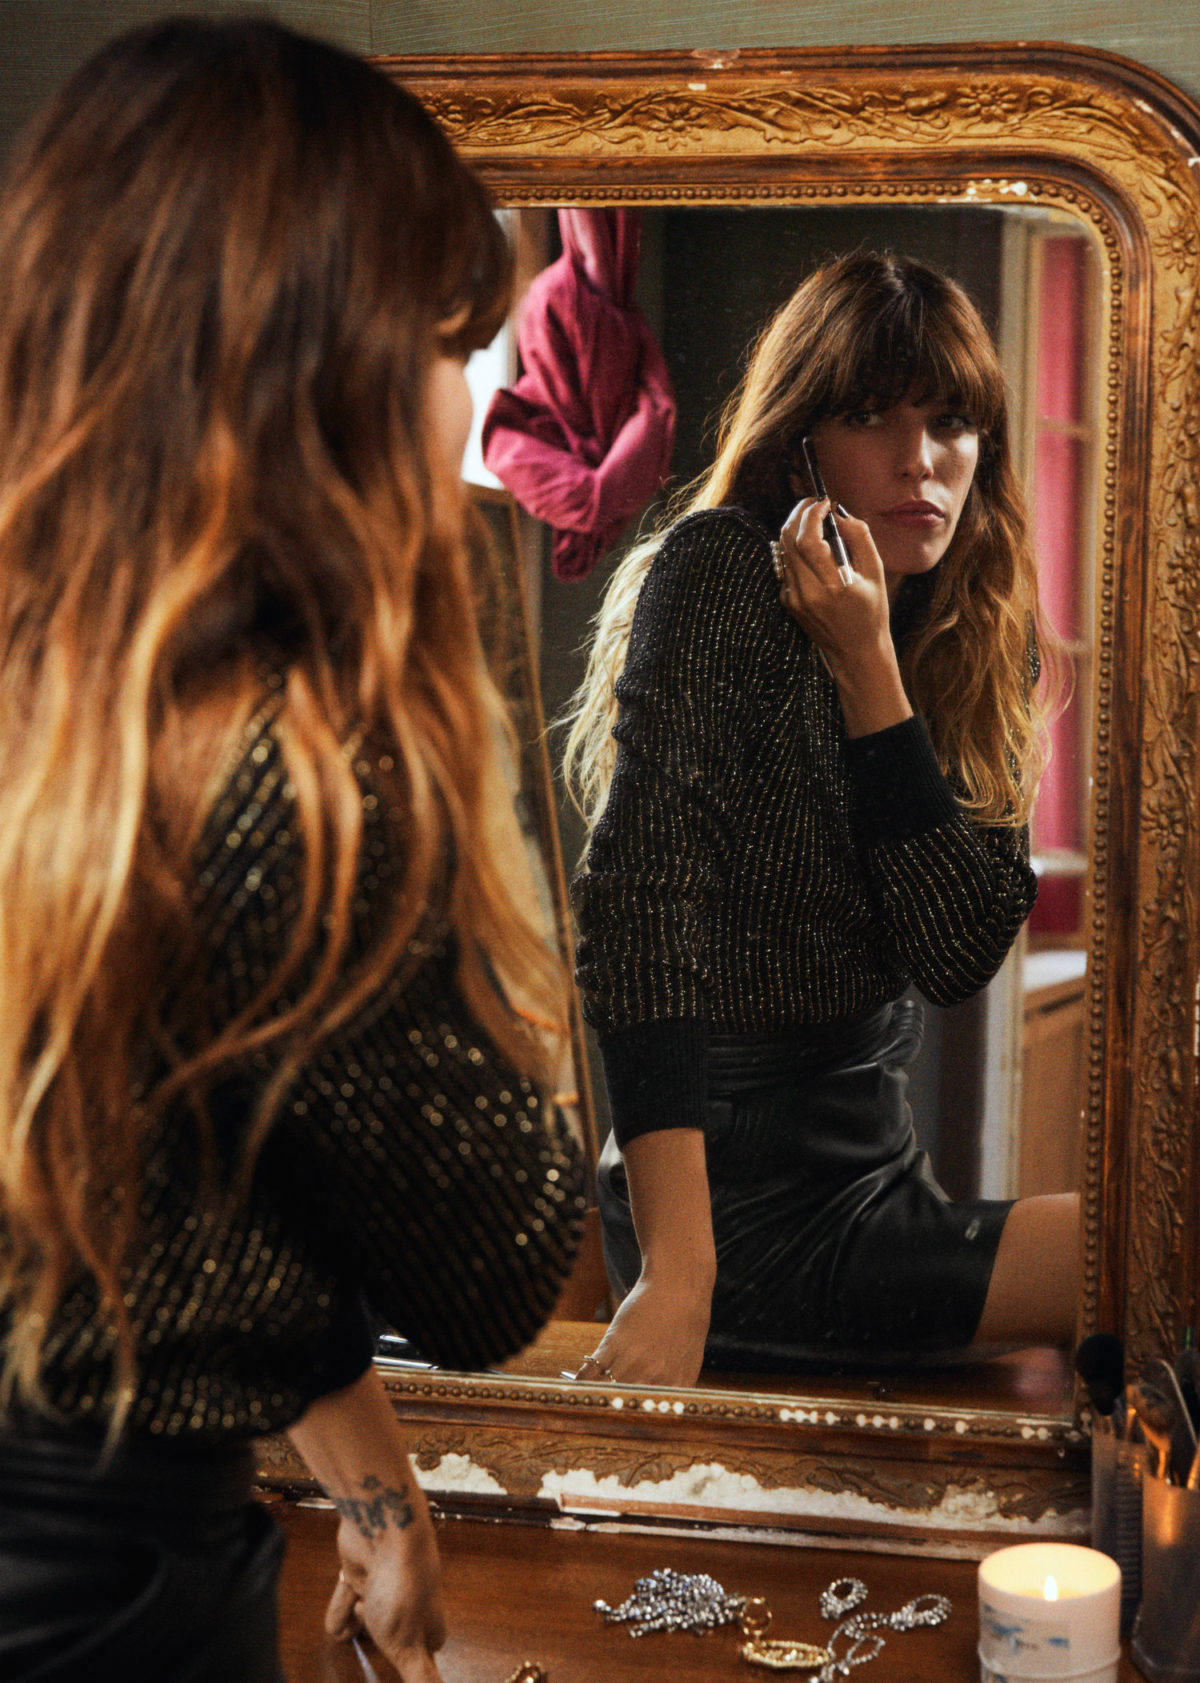 Lou Doillon & Other Stories